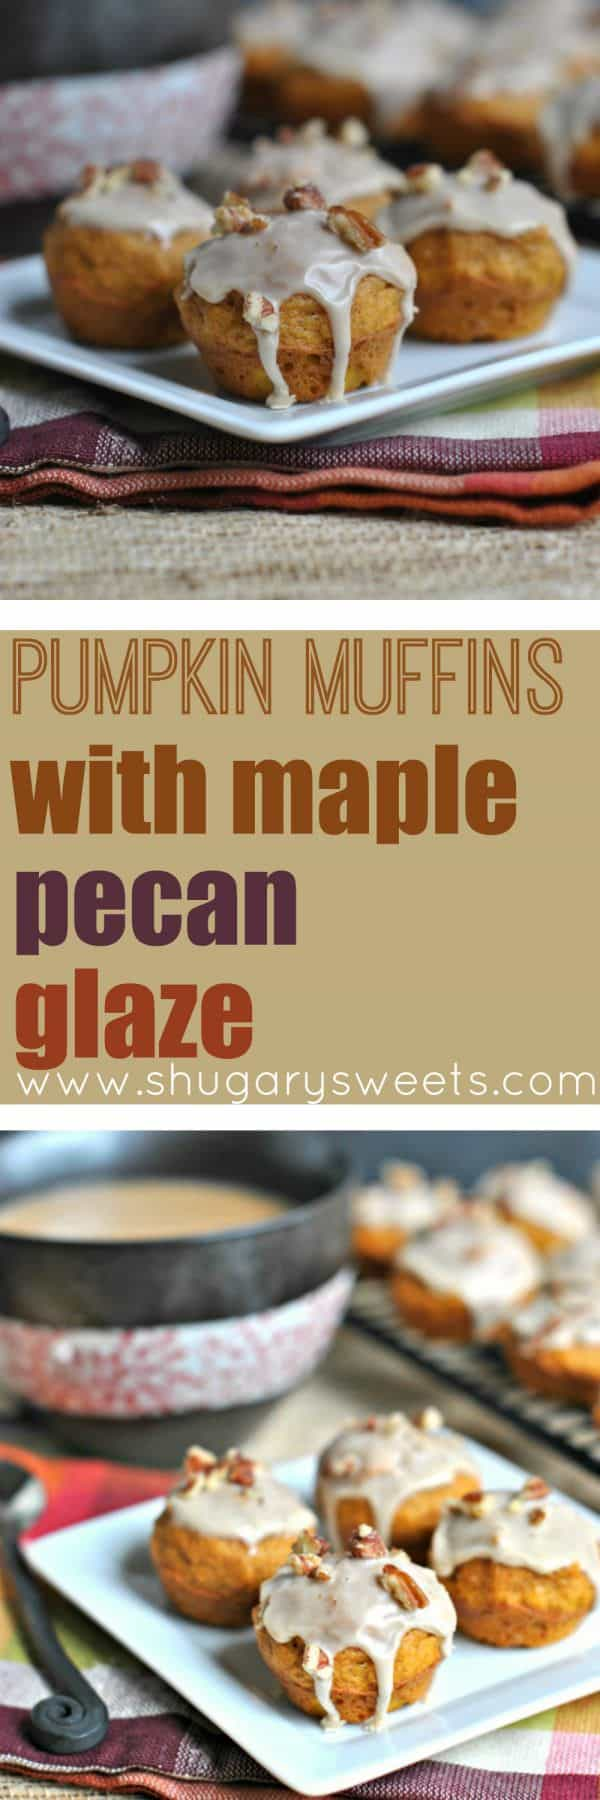 These Pumpkin Muffins with Maple Pecan Glaze are the perfect breakfast! Small bites means you get to eat more, right?